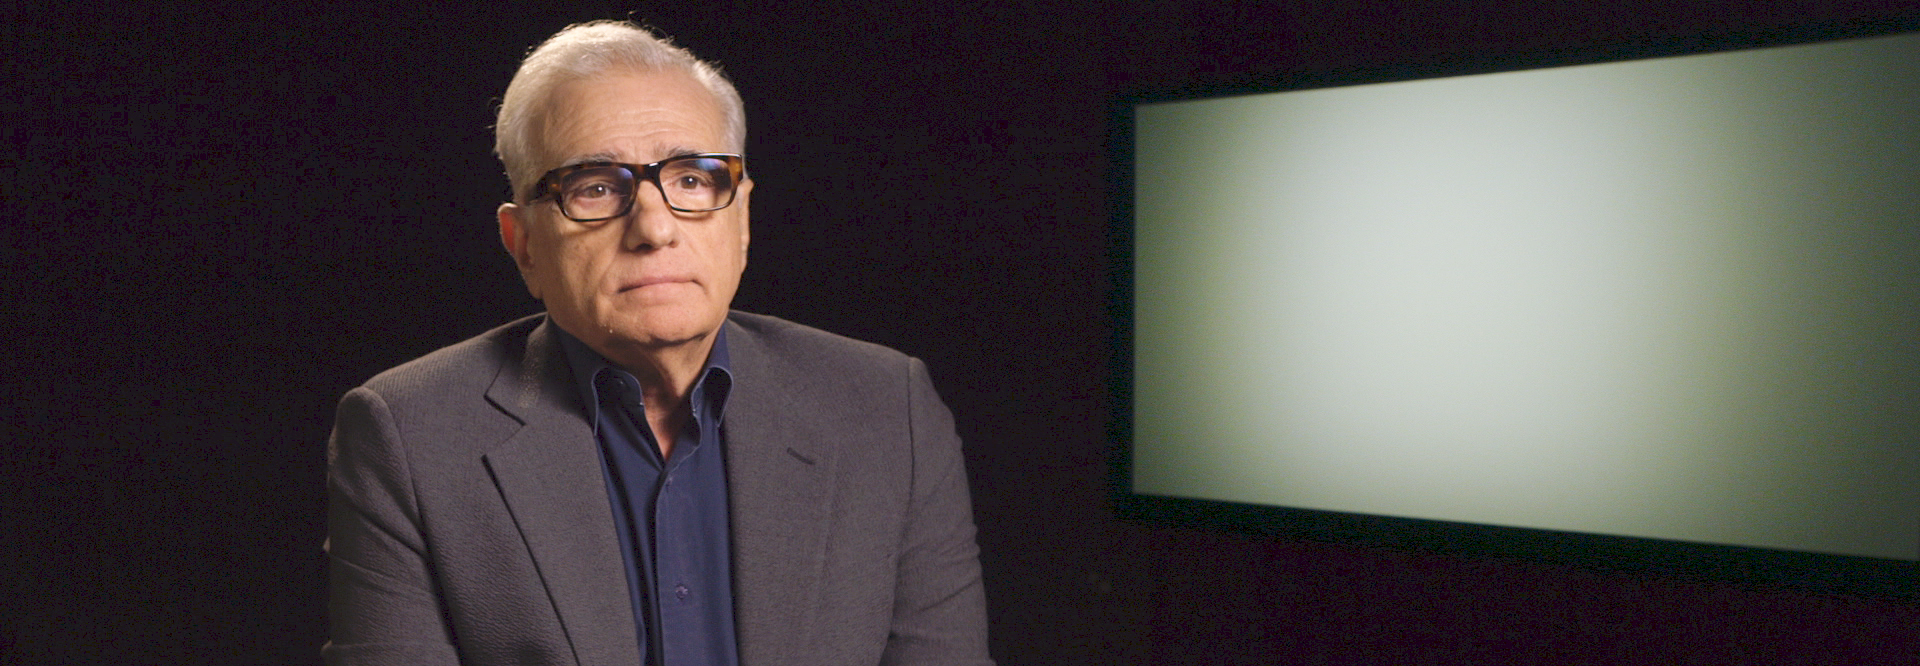 """Martin Scorsese in an interview in the documentary """"Cinema Futures"""""""